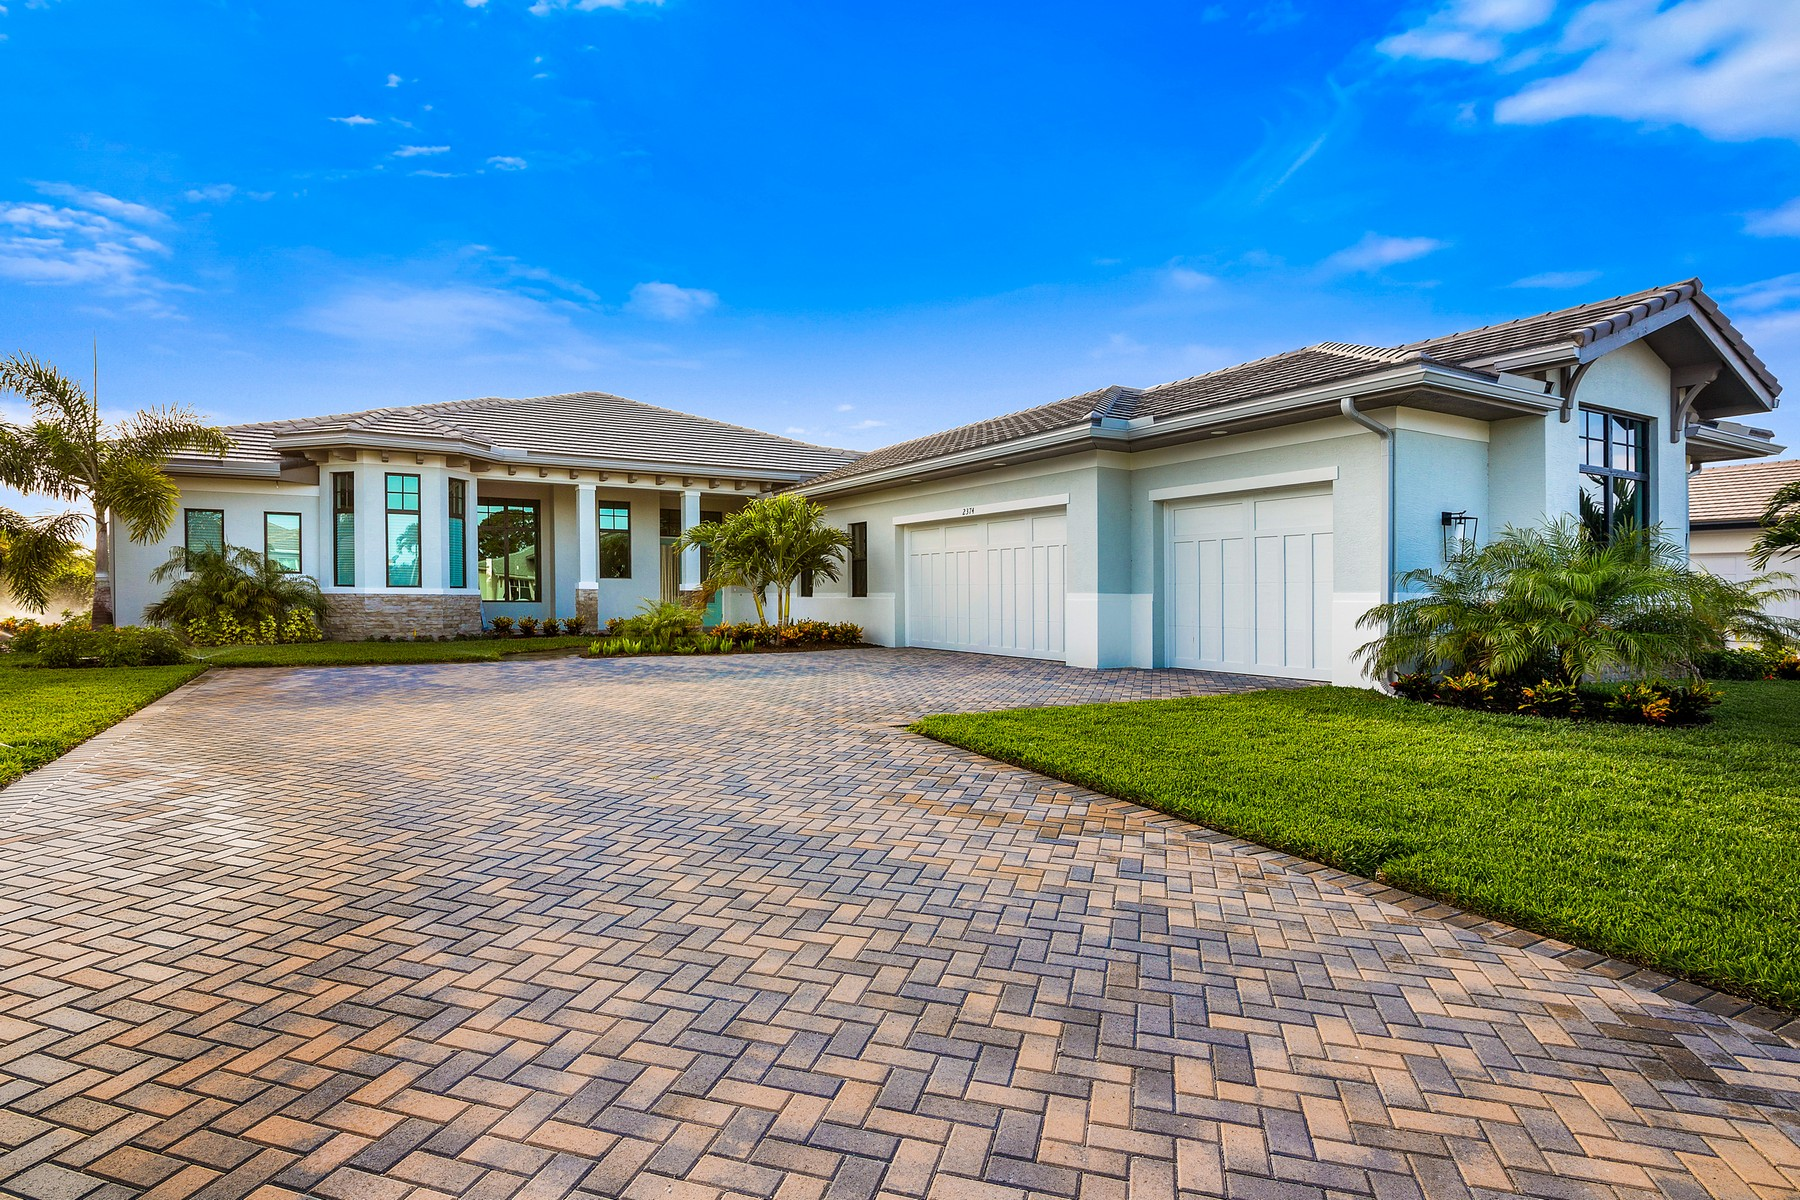 Single Family Homes for Sale at Luxury New Construction in Grand Harbor 2357 Grand Harbor Reserve Square Vero Beach, Florida 32967 United States